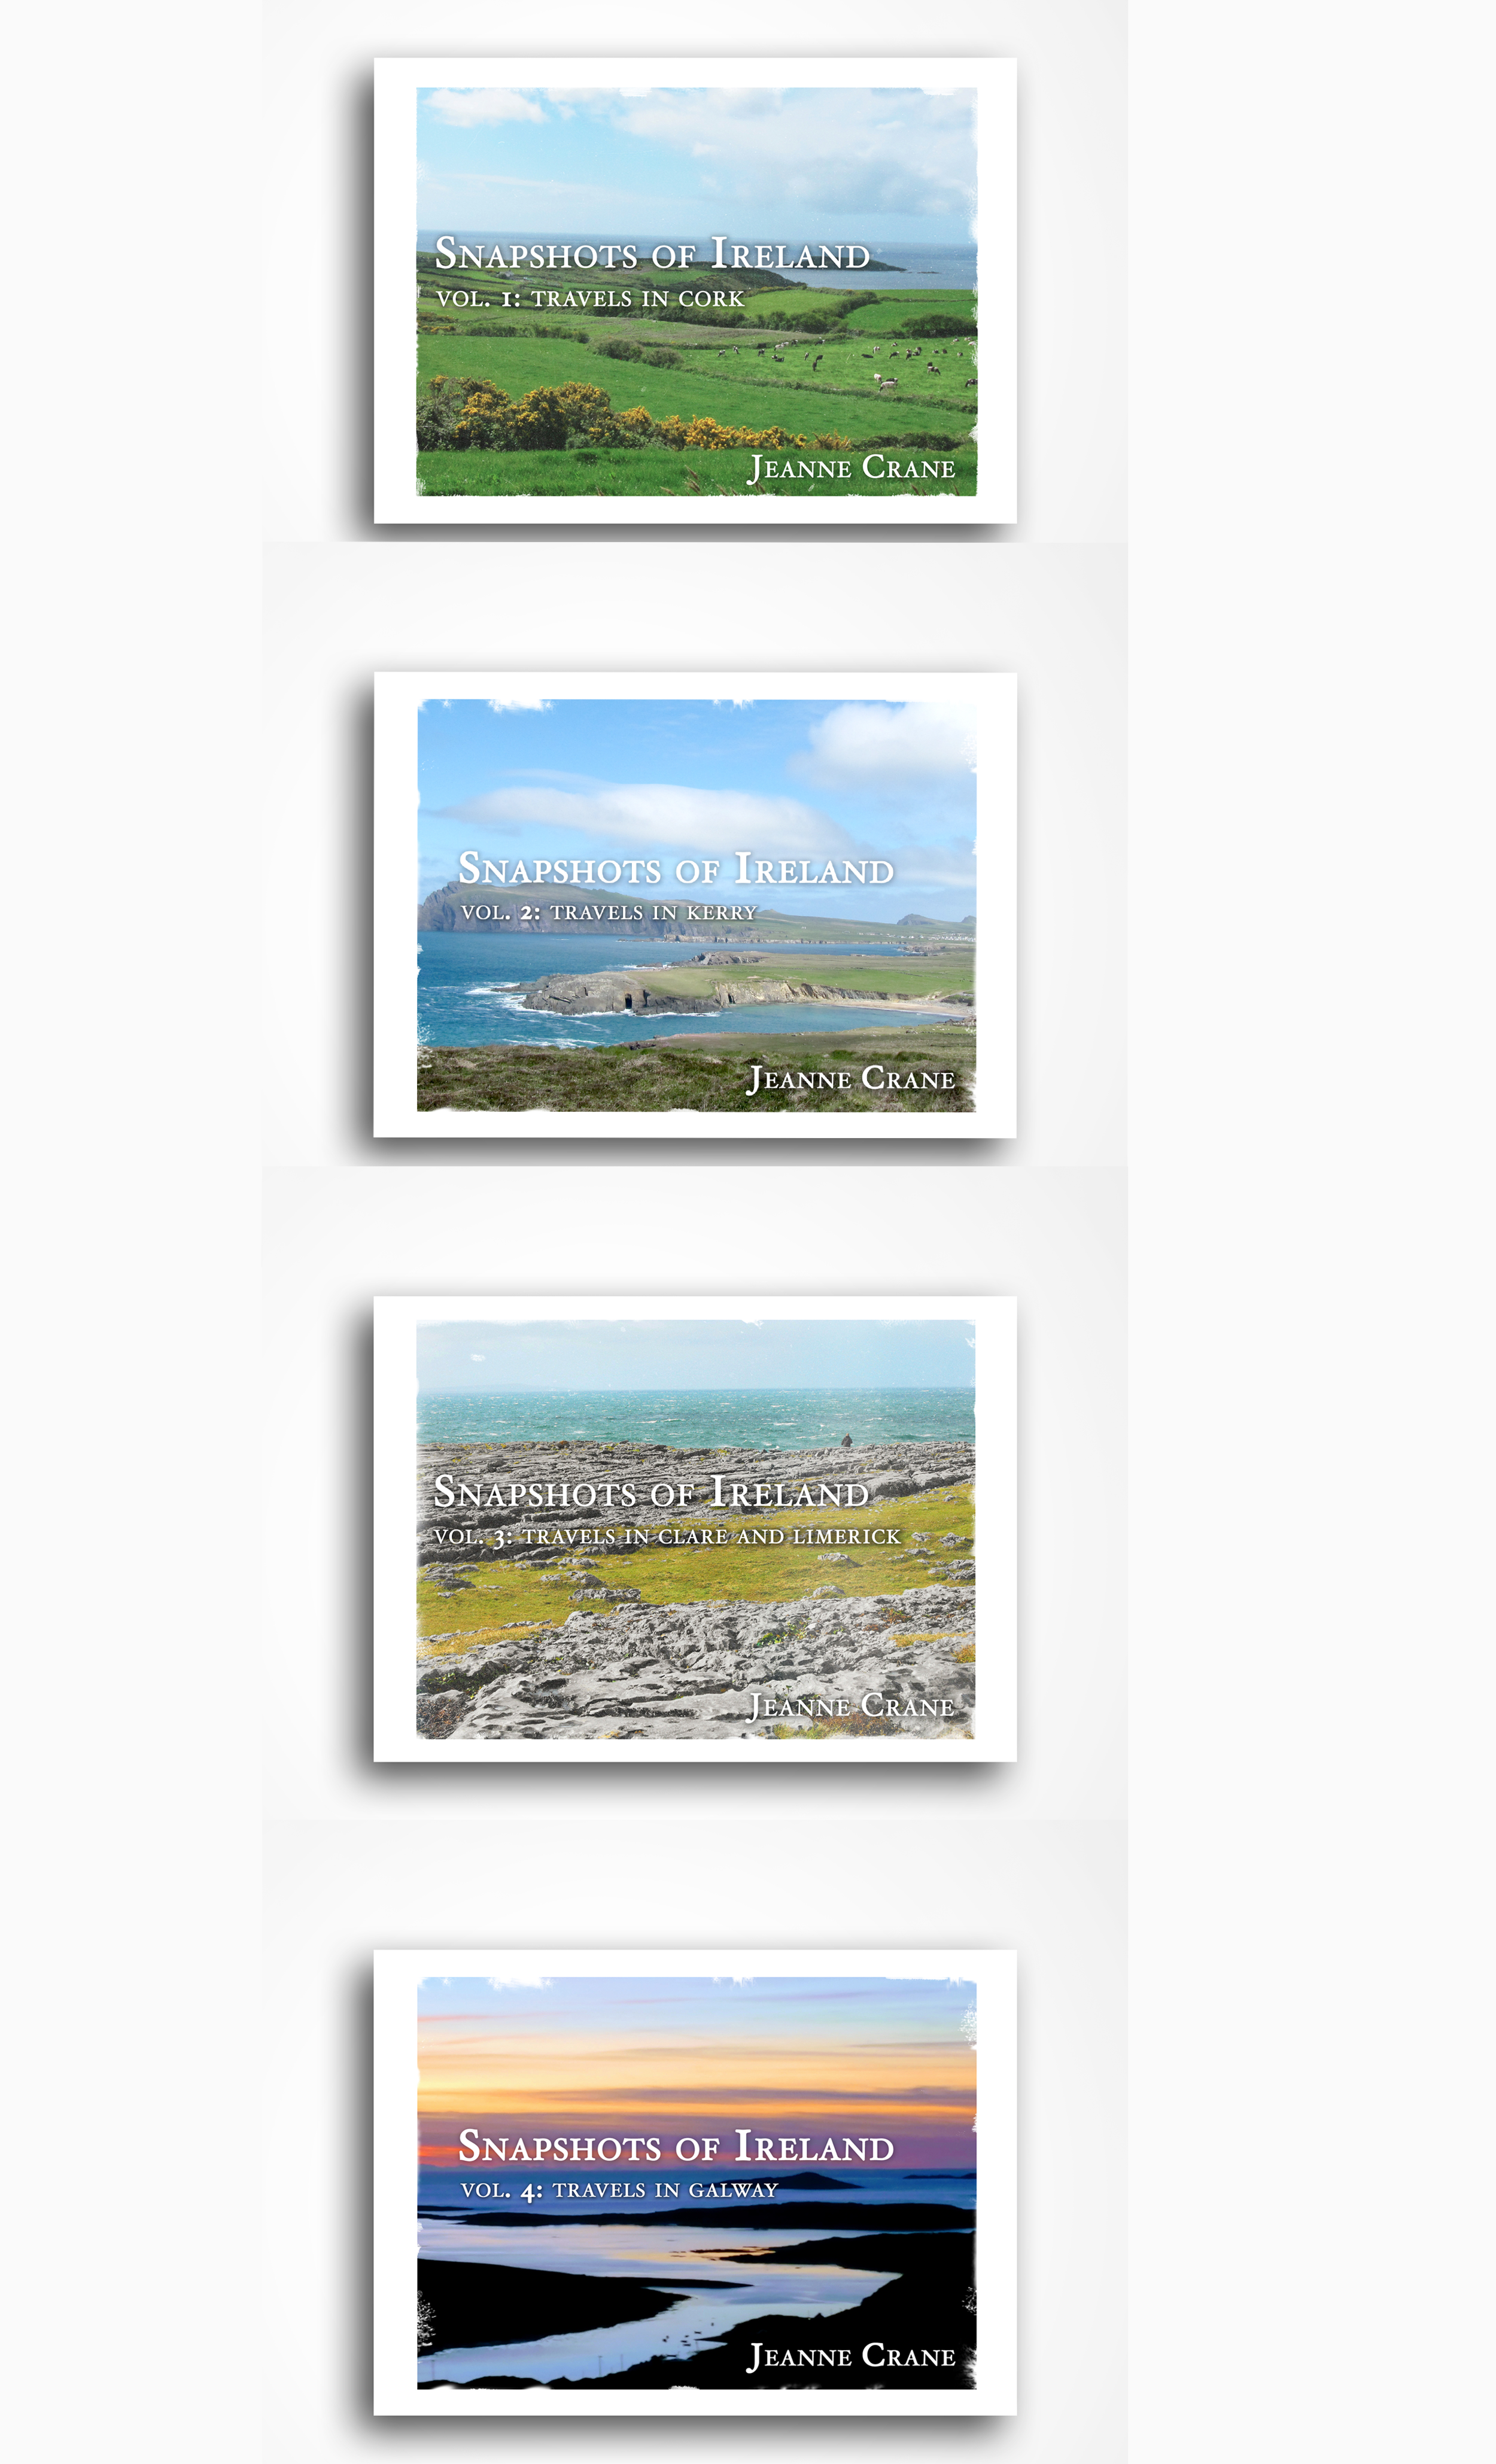 Snapshots of Ireland Volumes 1 - 4 - Snapshots of Ireland is the overarching title for this series of travel books that offers the reader an up close and personal glimpse of the Emerald Isle, along the Wild Atlantic Way. The pictures and the author's conversational notes reflect her love for Ireland and her keen eye for places and experiences that capture the Irish spirit. She includes the obvious tourist stops, but relishes in sharing hidden treasures that may be just a few miles off the beaten path, especially those the Irish call thin places. Readers going to Ireland will find guidance in these soft-covers, lightweight, handy books (8.25 x 6 inches). Armchair travelers will enjoy a vicarious tour. Those who have already visited Ireland will find the pictures and commentary evoke fond memories.Volume 1: Travels in CorkVolume 2: Travels in KerryVolume 3: Travels in Clare and LimerickVolume 4: Travels in Galway